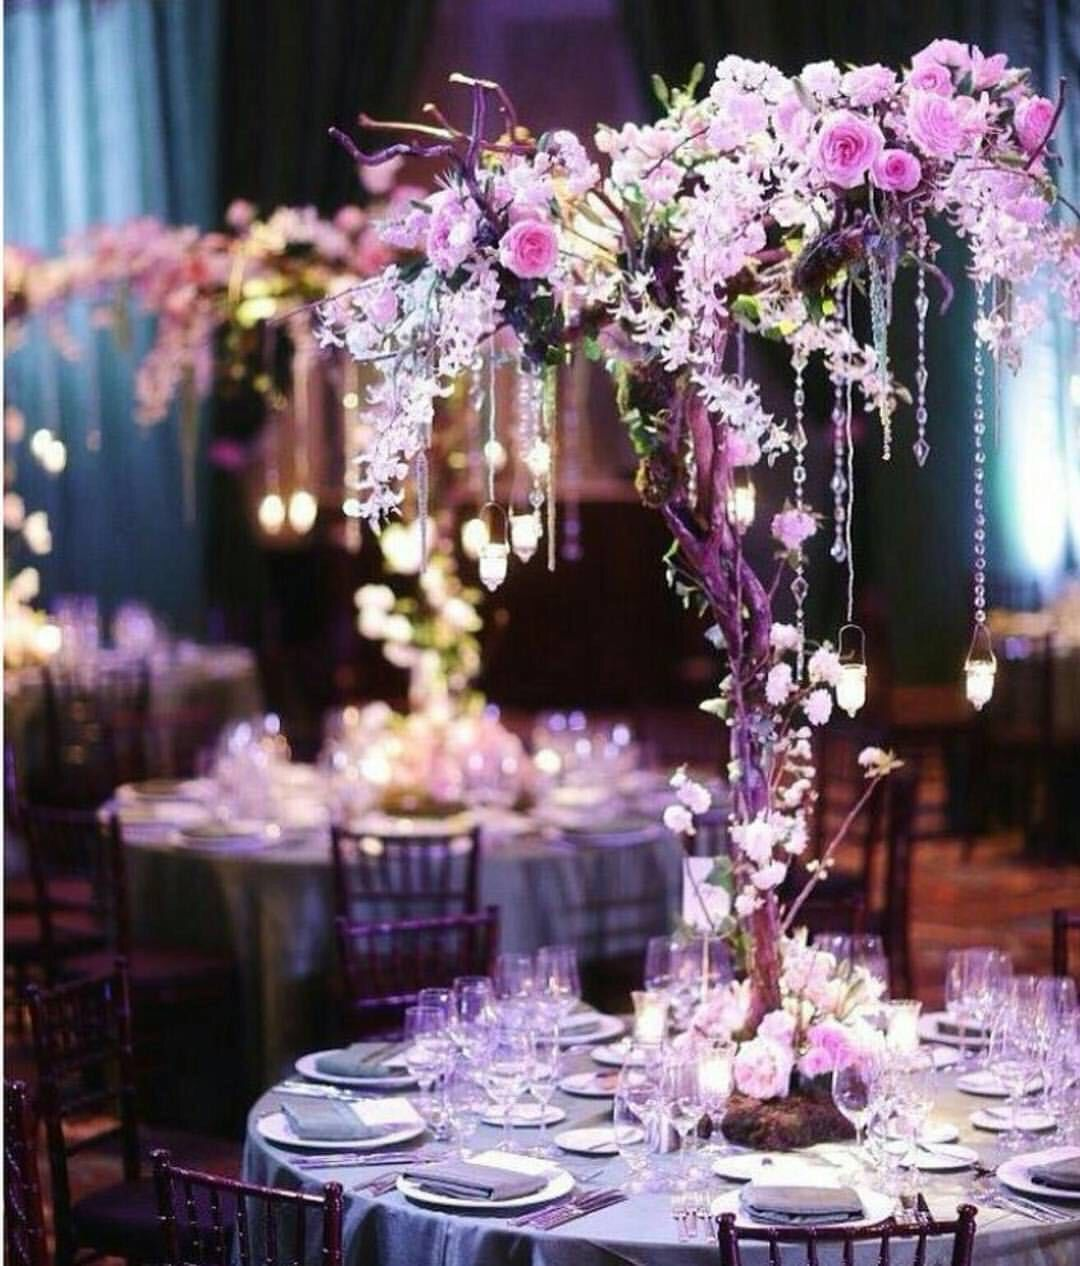 Pin by damas flowers on wedding collection pinterest florist weddingideas wedding decorations wedding stuff purple image beautiful sharjah wedding planning wedding decoration junglespirit Gallery